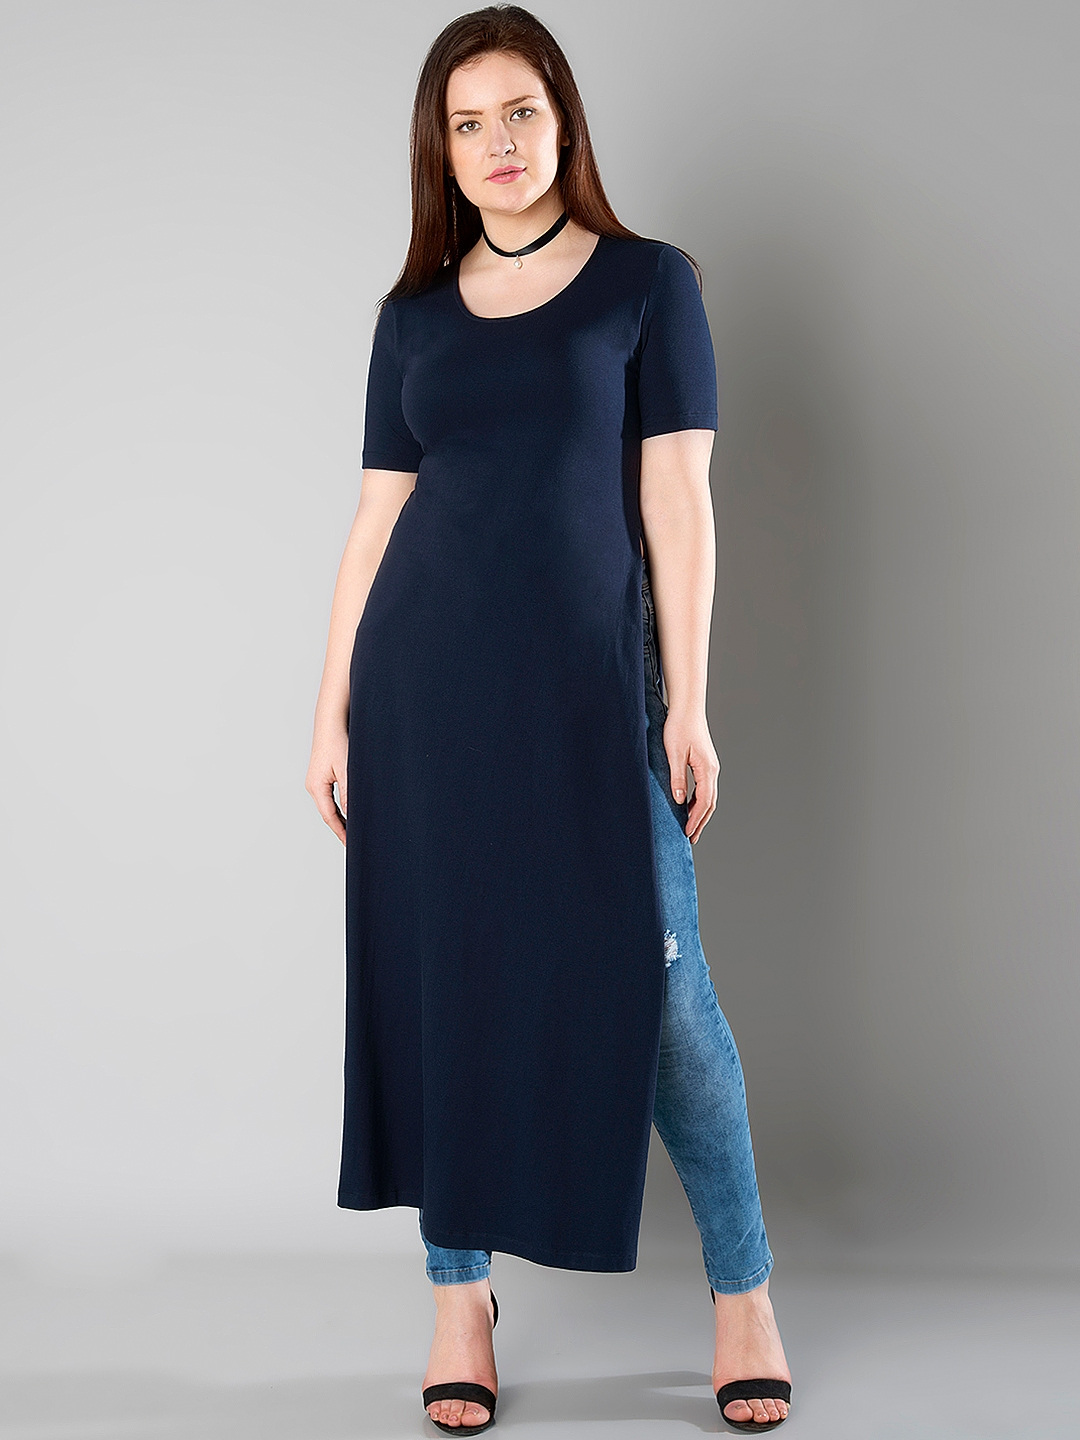 79af41f3250bb Buy FabAlley Curve Navy Maxi Top - Tops for Women 1767344